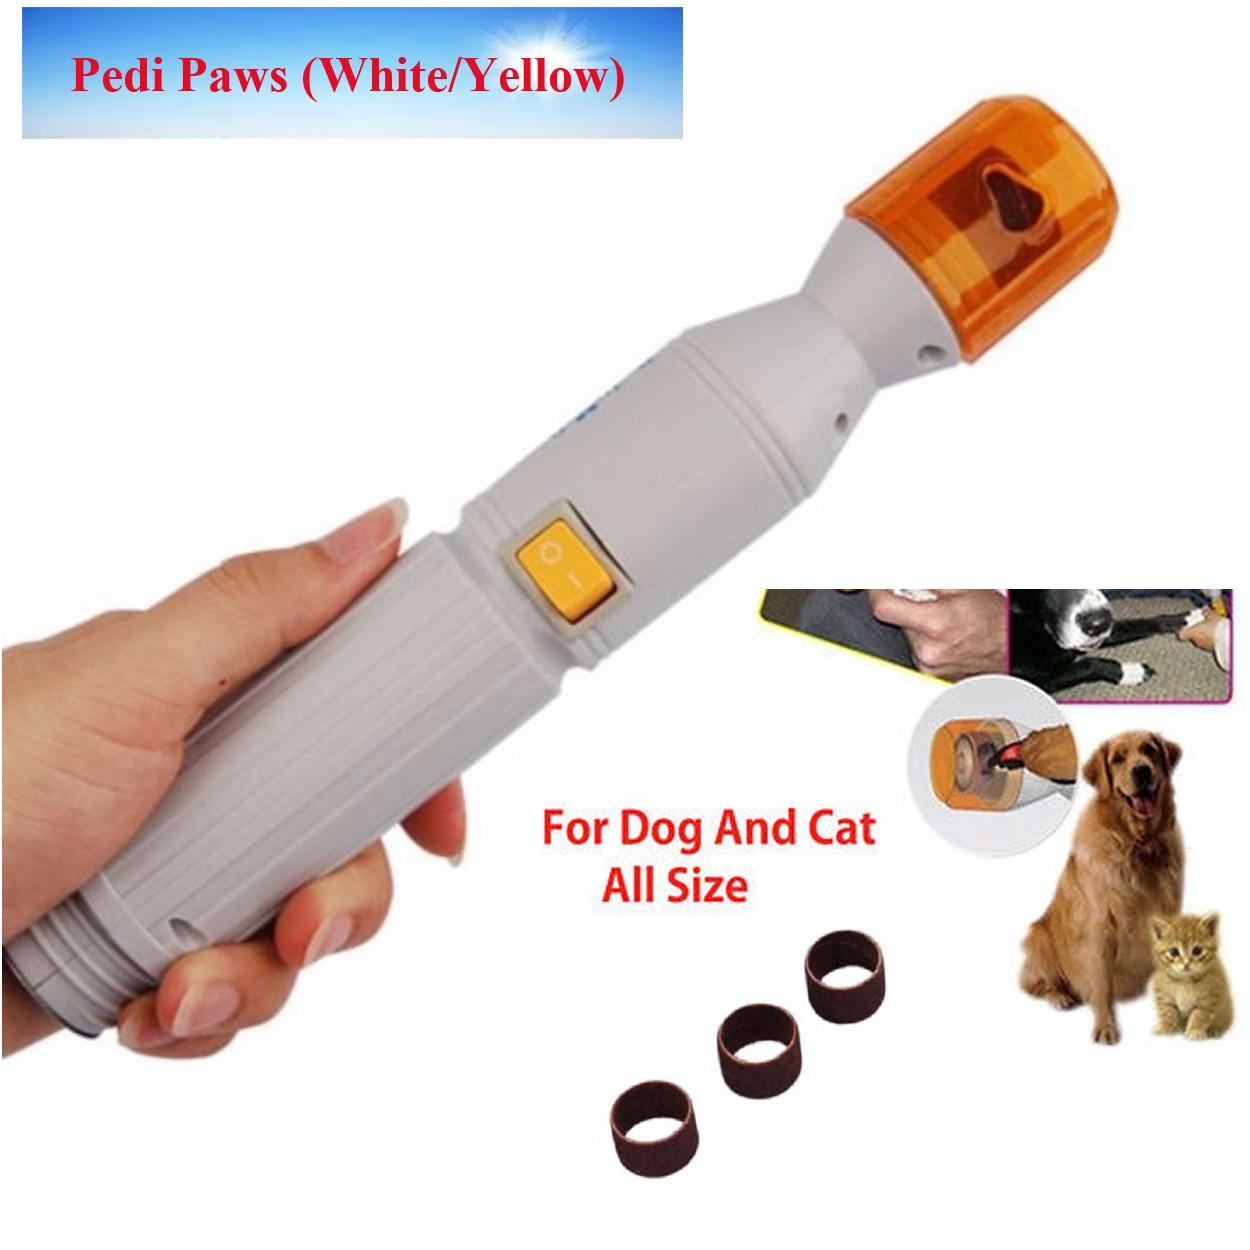 Dog Nail Cutter for sale - Dog Nail Clipper online brands, prices ...